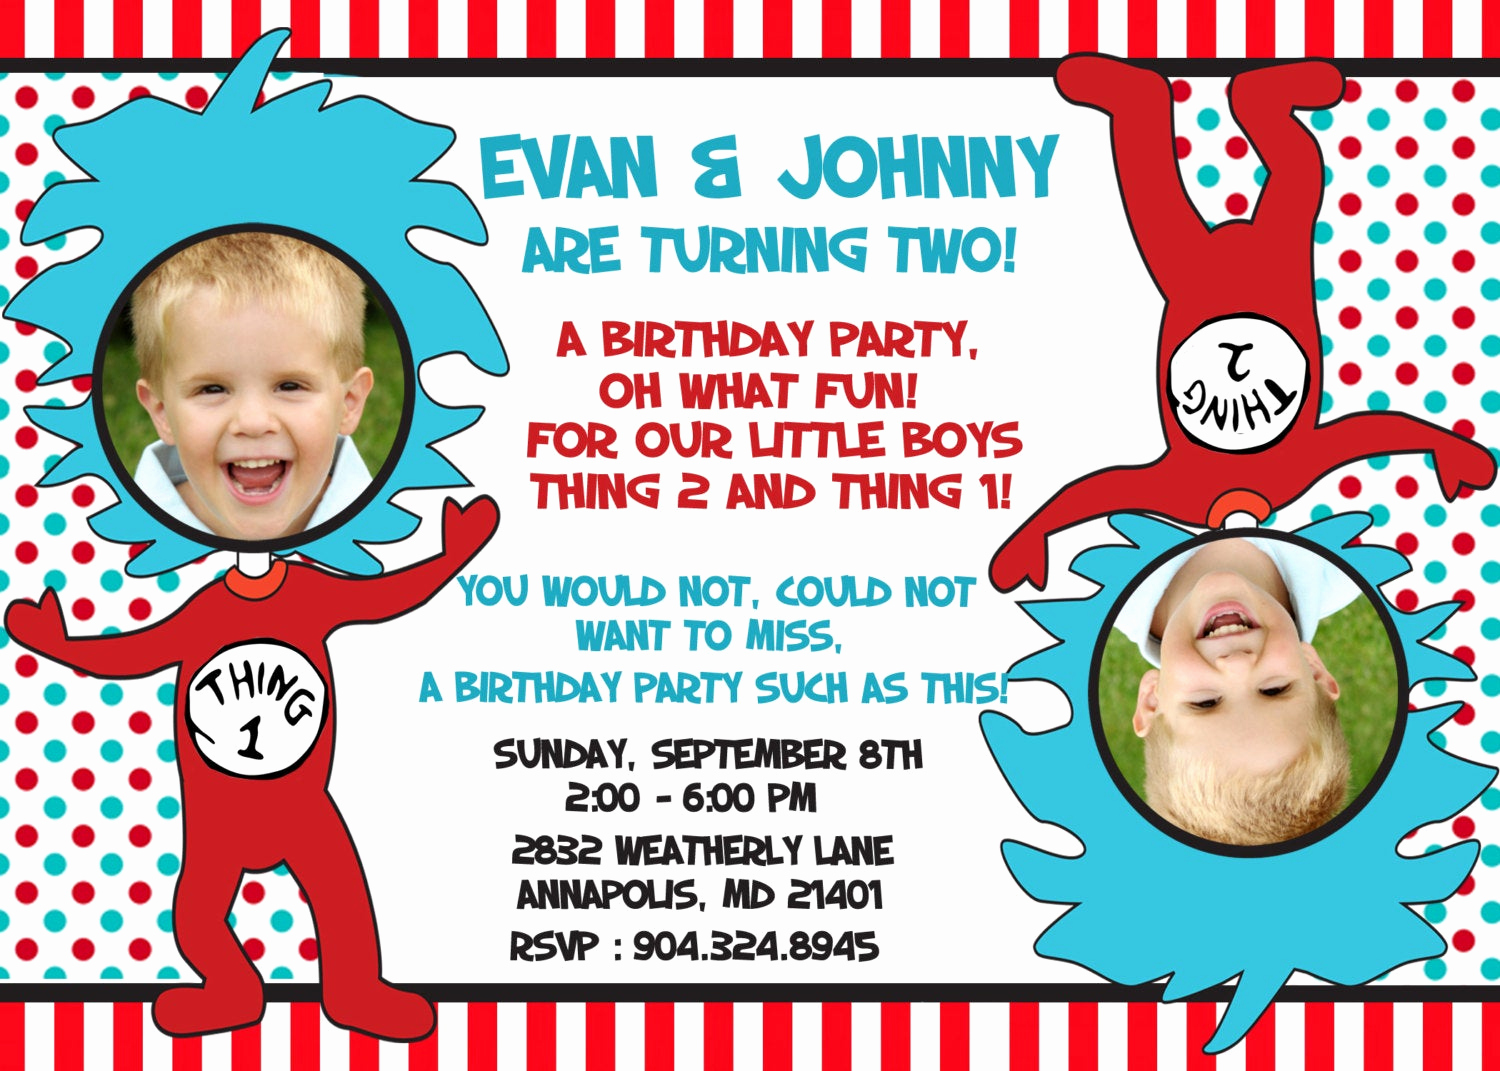 Dr Seuss Birthday Invitation Luxury Dr Seuss Thing 1 Thing 2 Twins Birthday Party Invitation